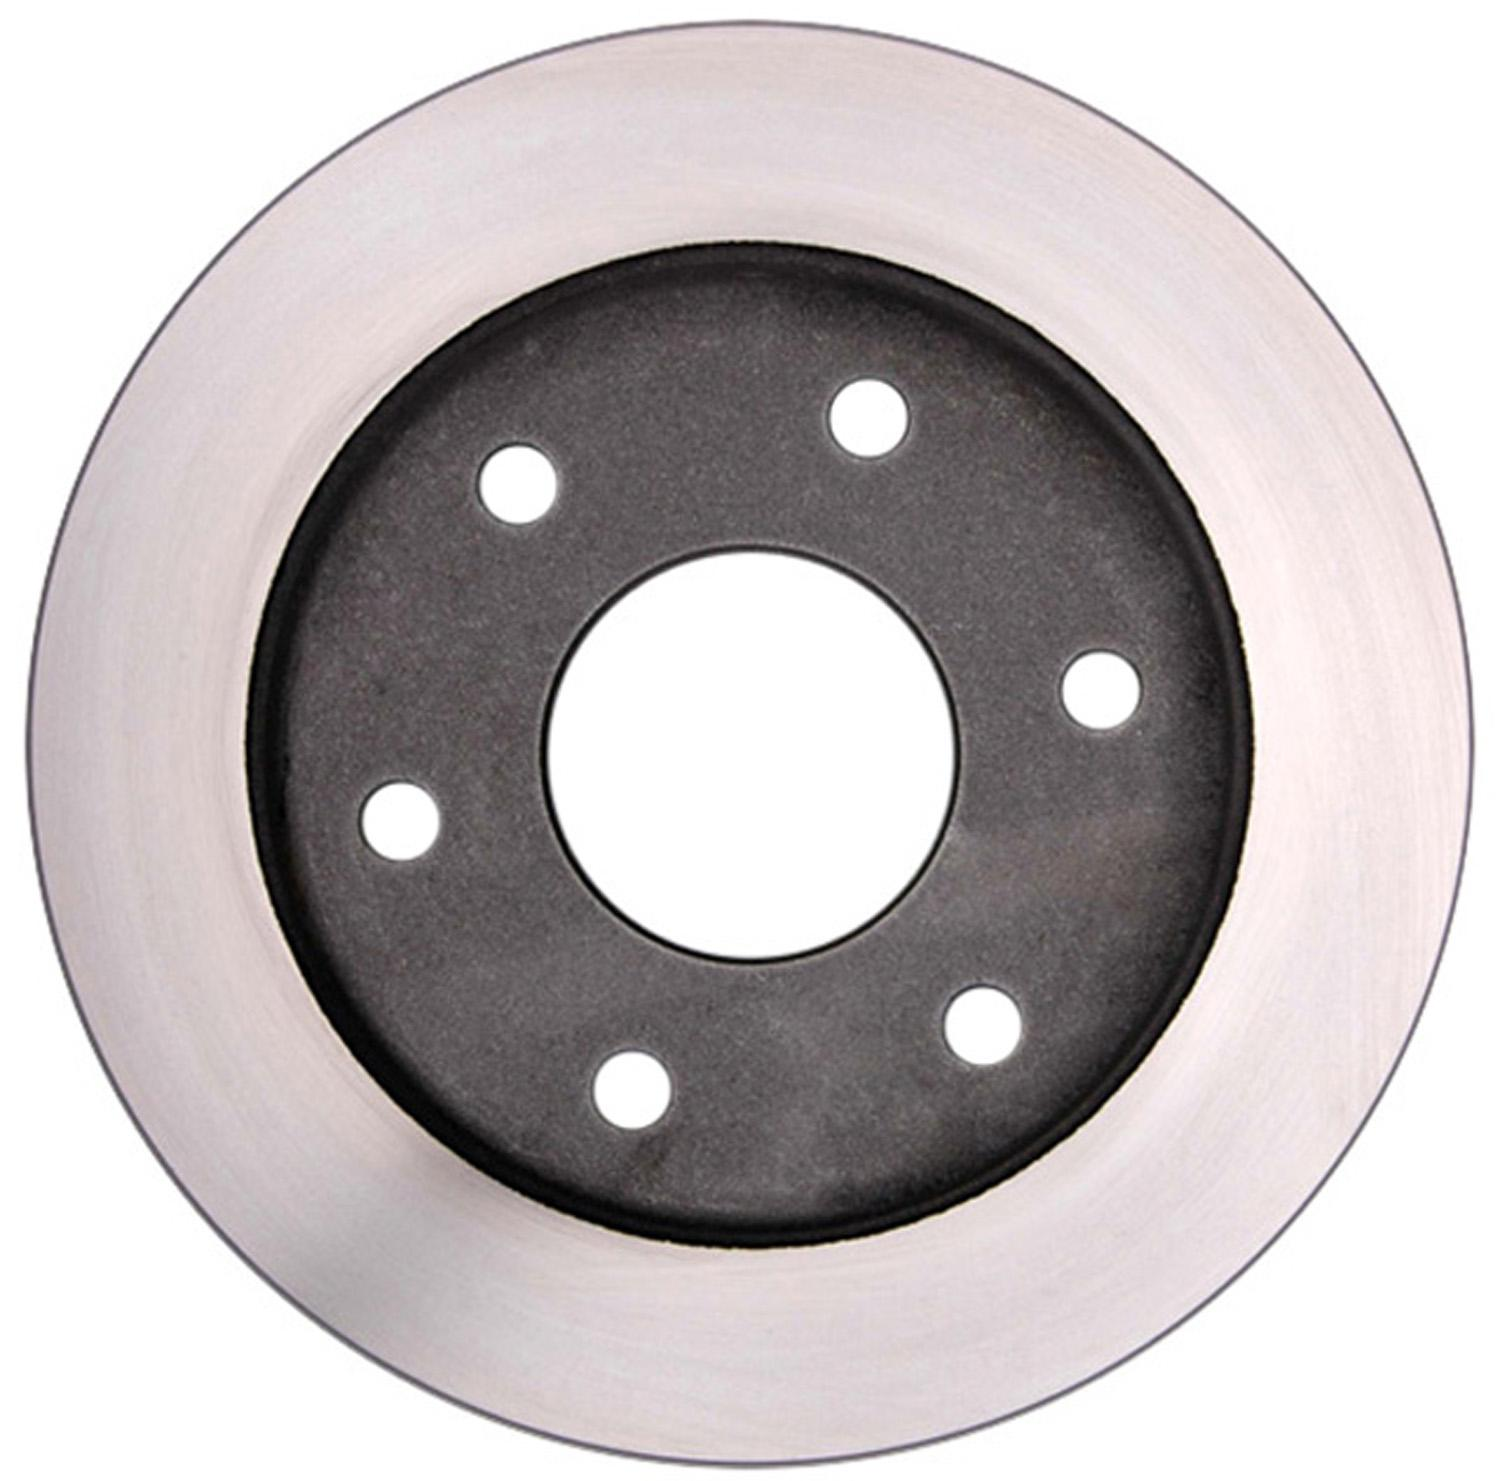 ACDELCO PROFESSIONAL BRAKES - Disc Brake Rotor - ADU 18A258